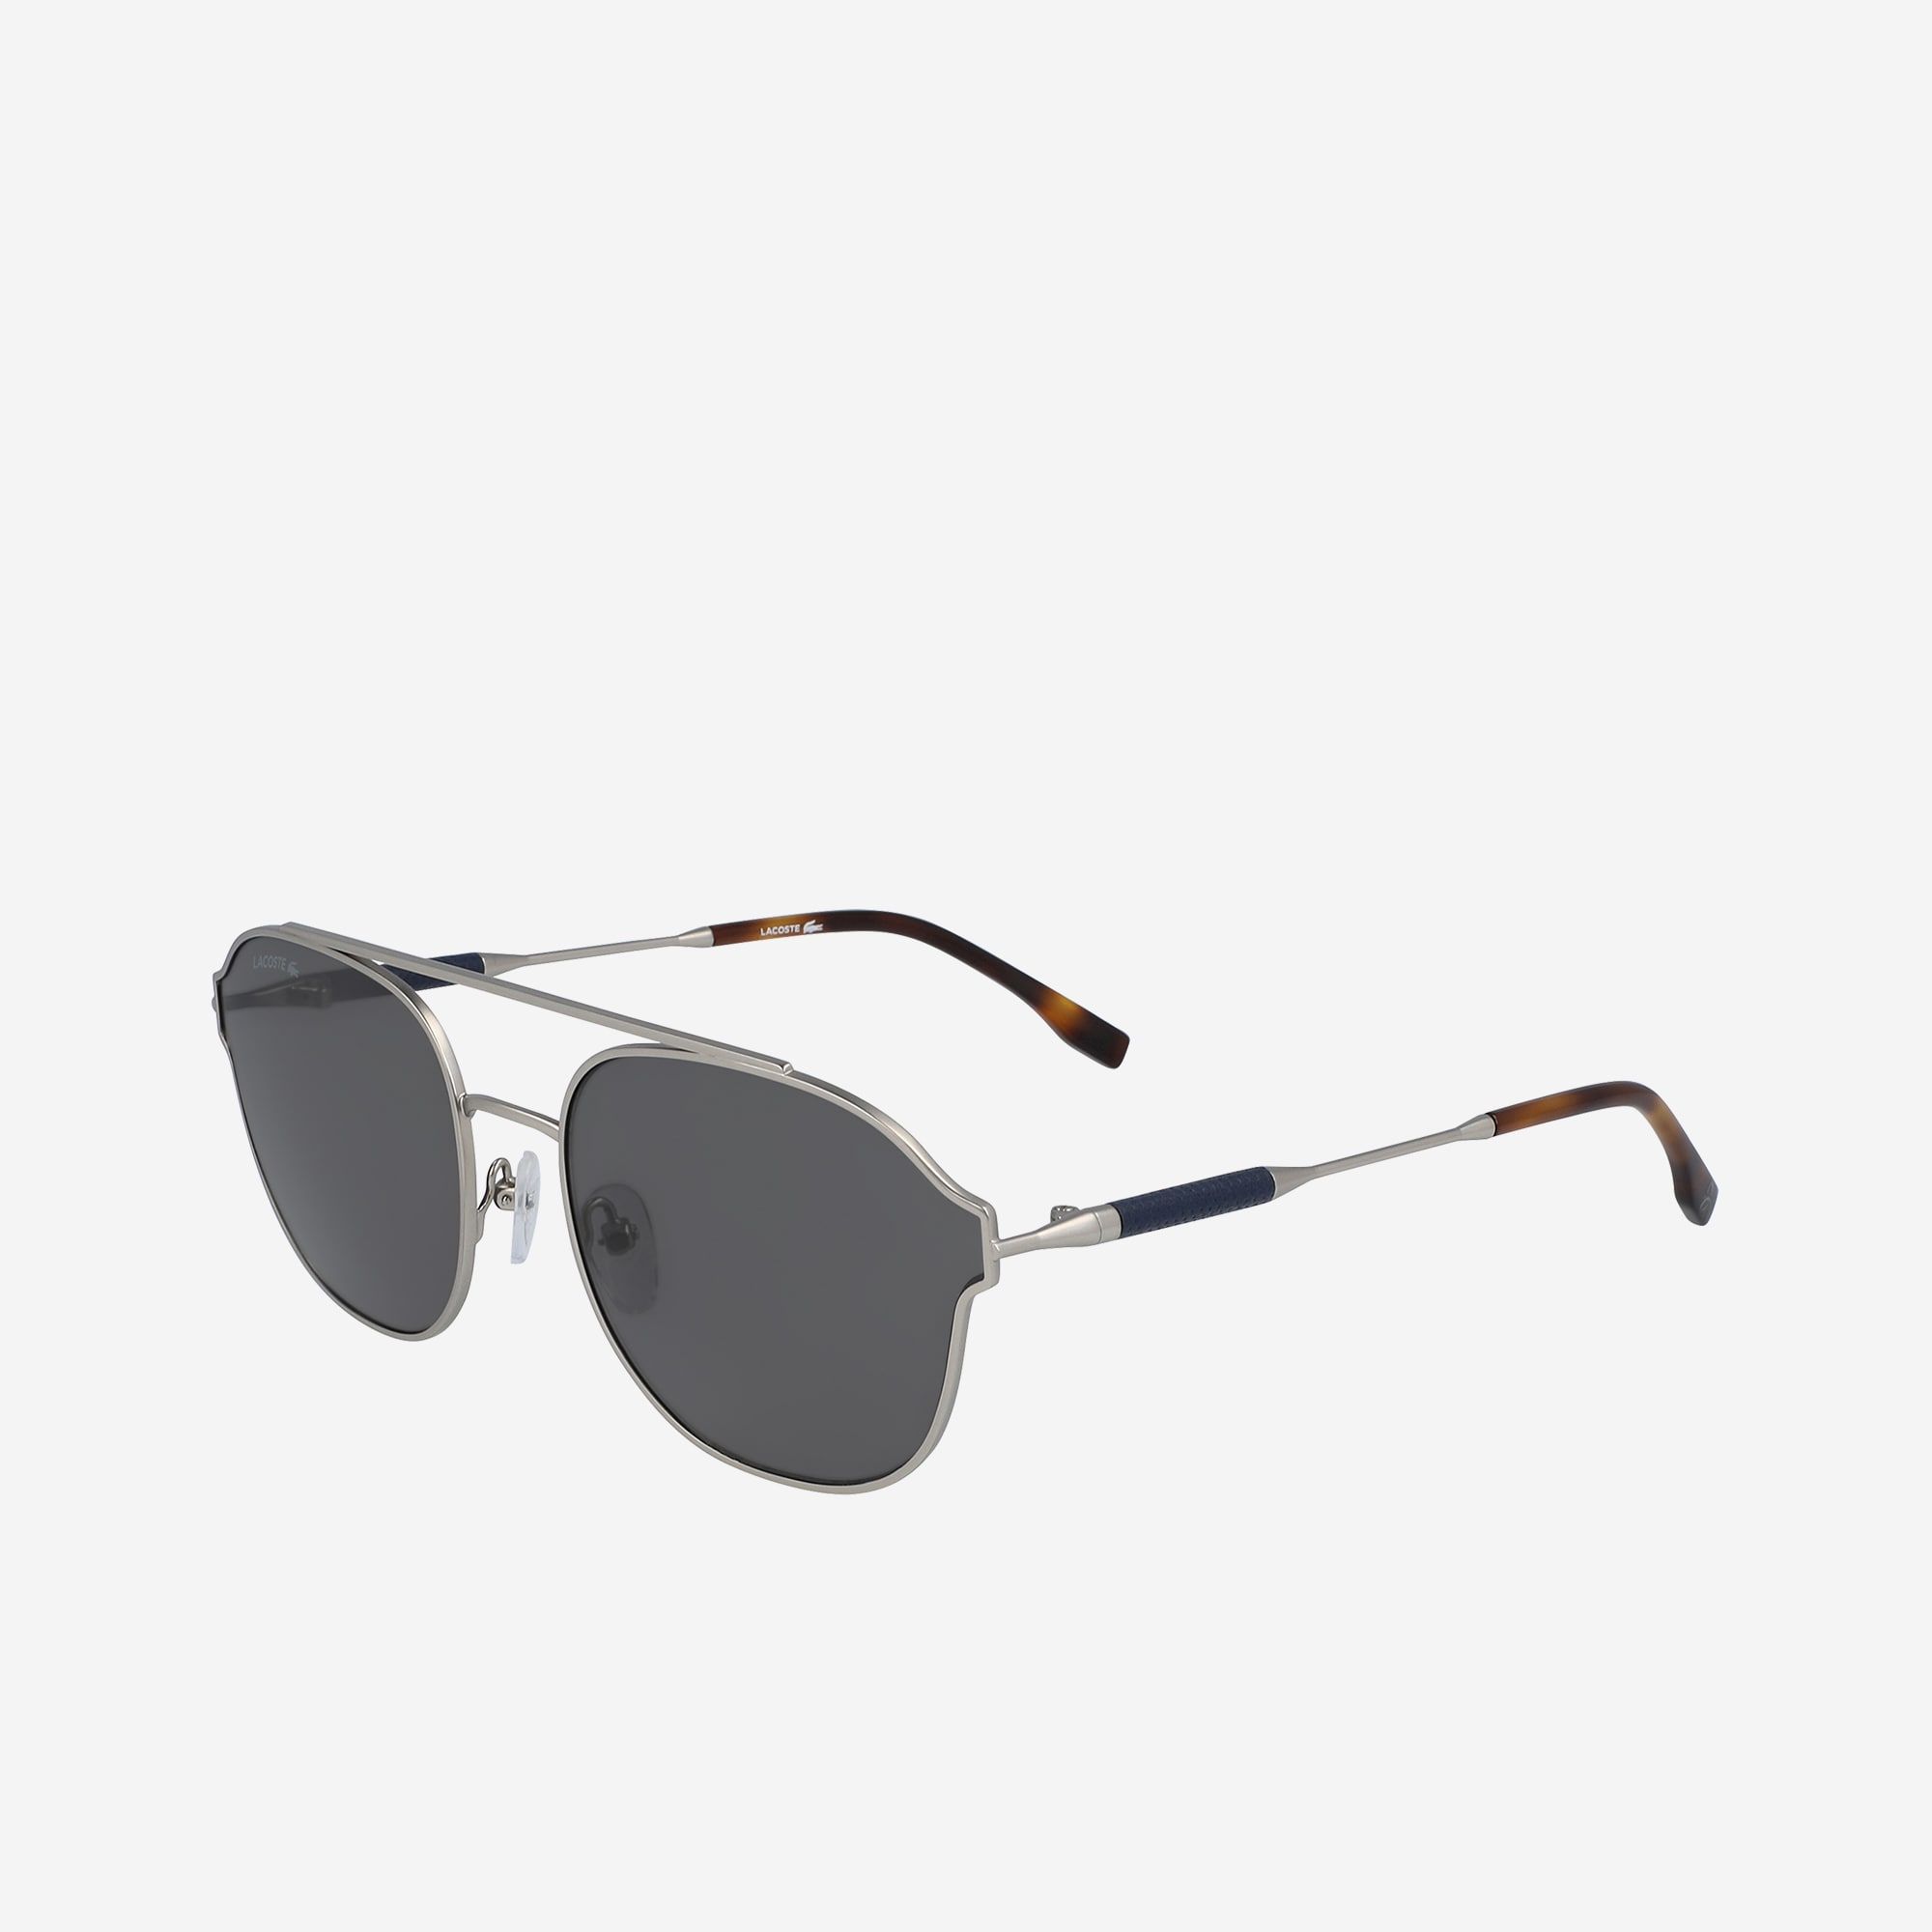 985487c42ded Sunglasses for men | Men's Accessories | LACOSTE